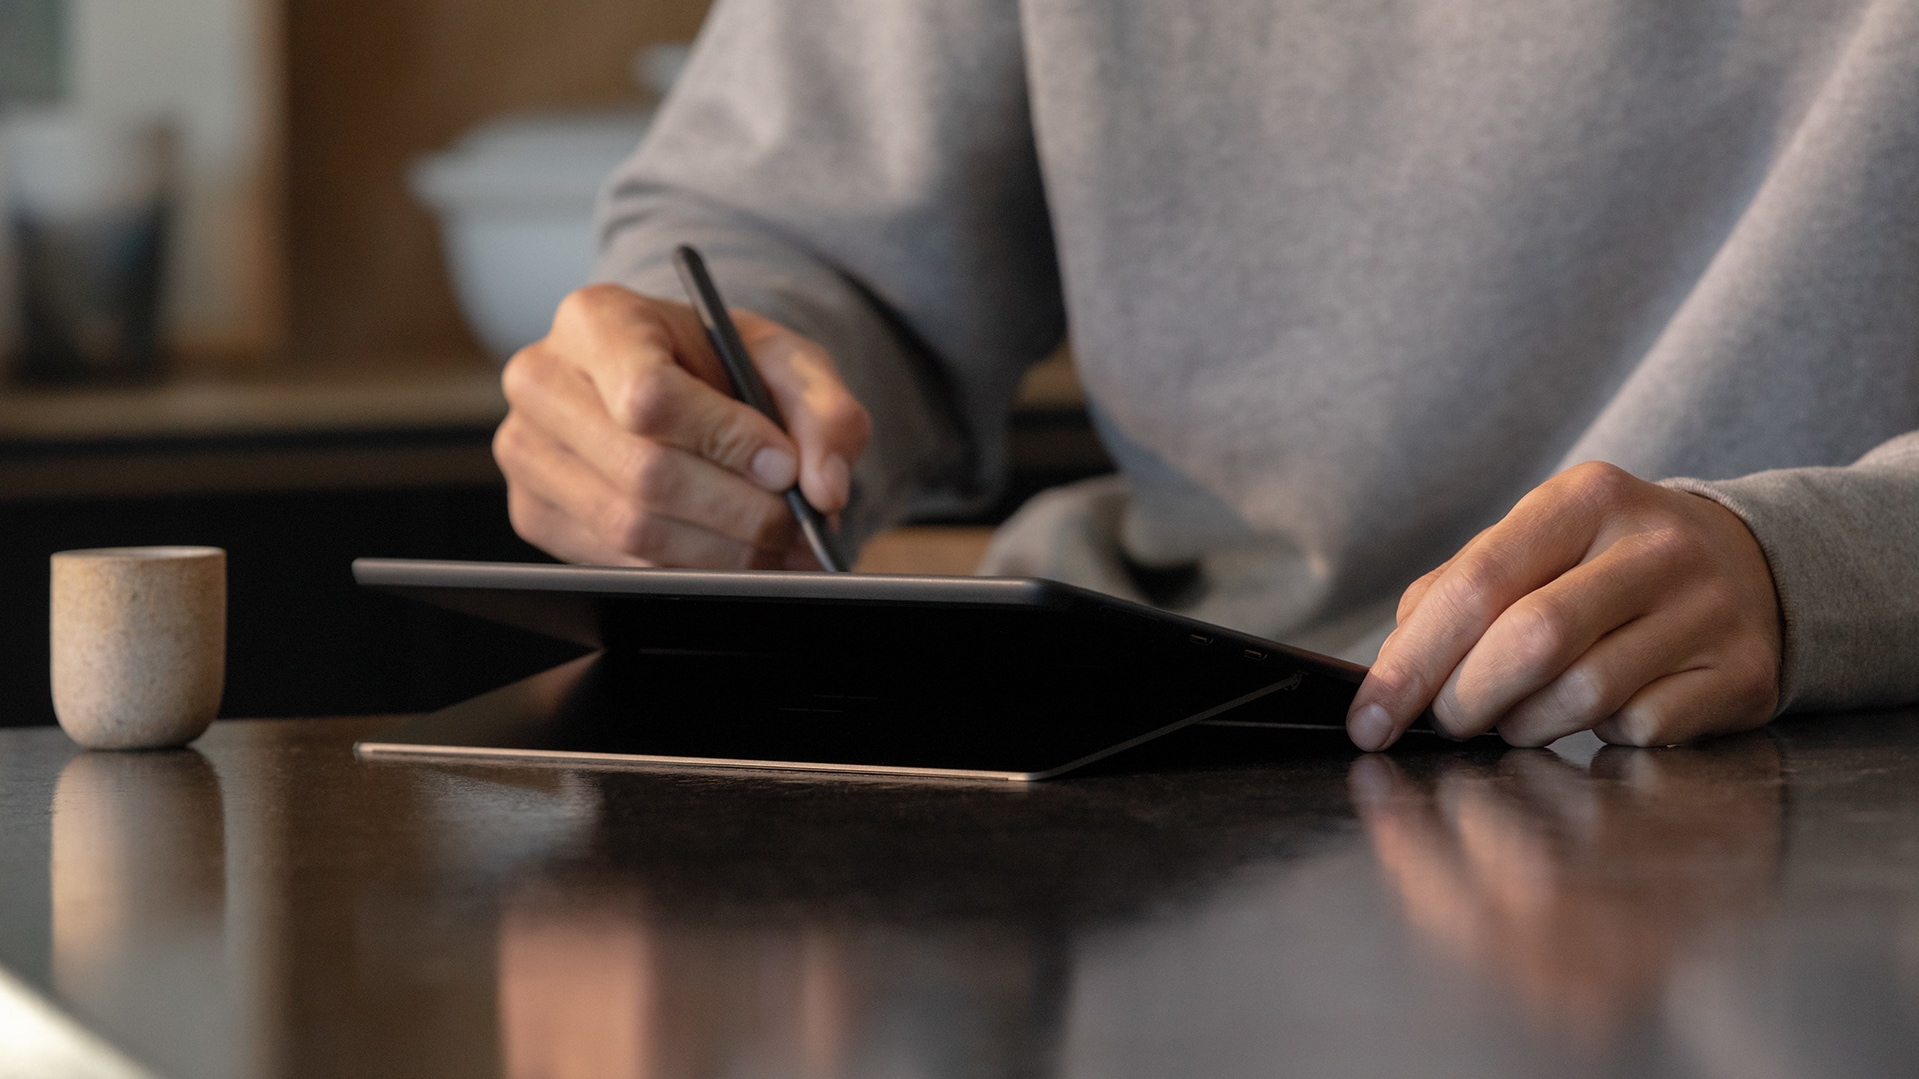 Woman sitting at table working on Surface Pro X